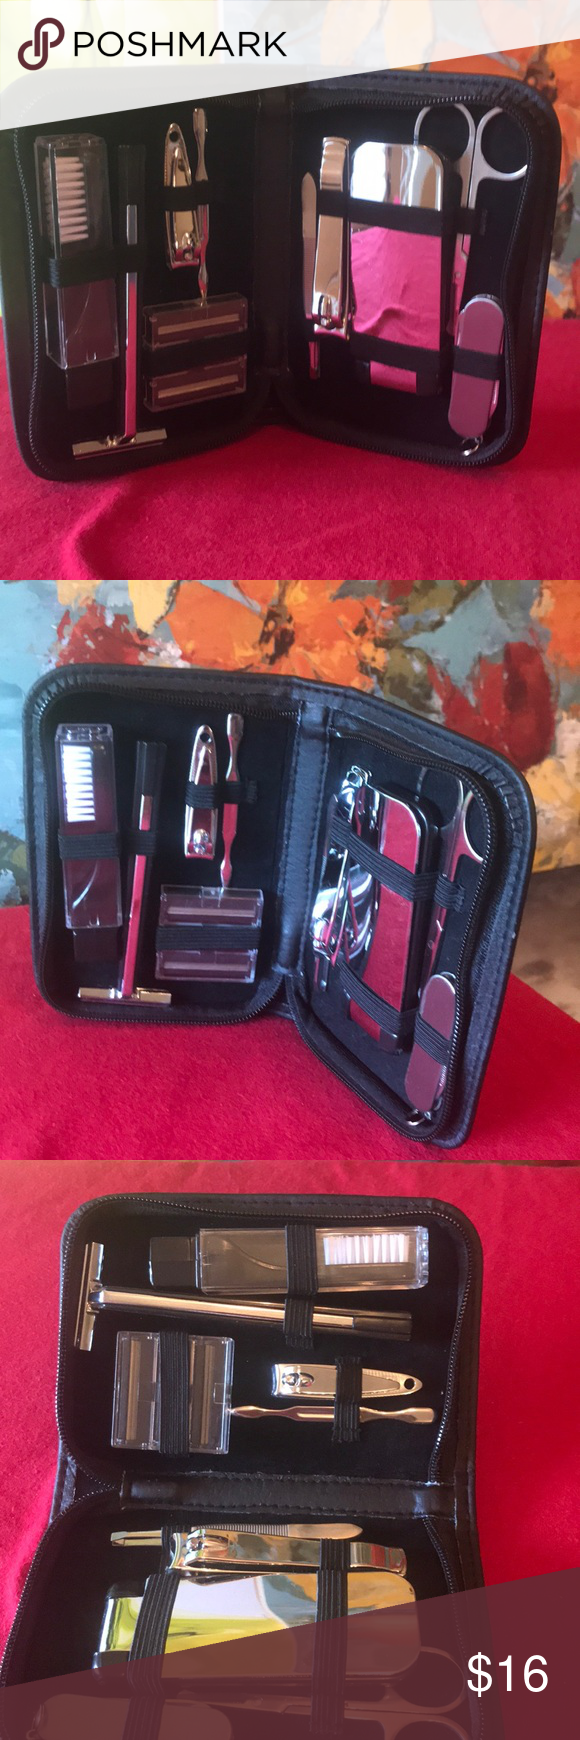 Guess travel grooming kit New grooming kit only the zipper on the case not worki...